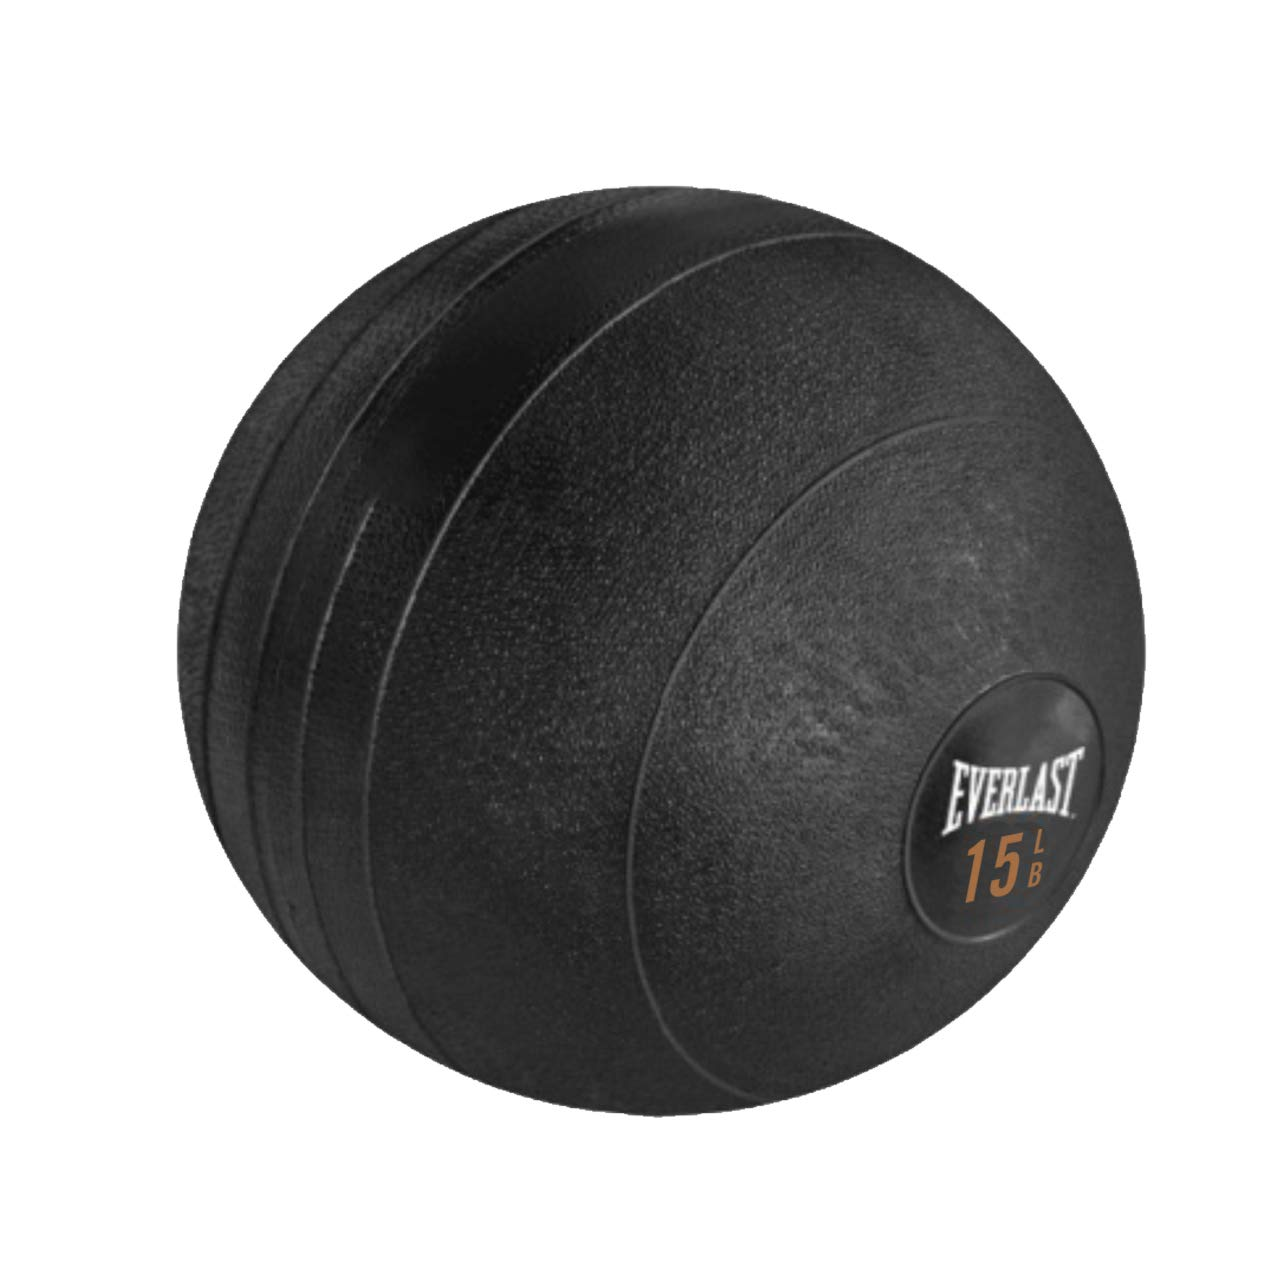 Everlast 15lb Flex Slam Ball Flex Slam Ball